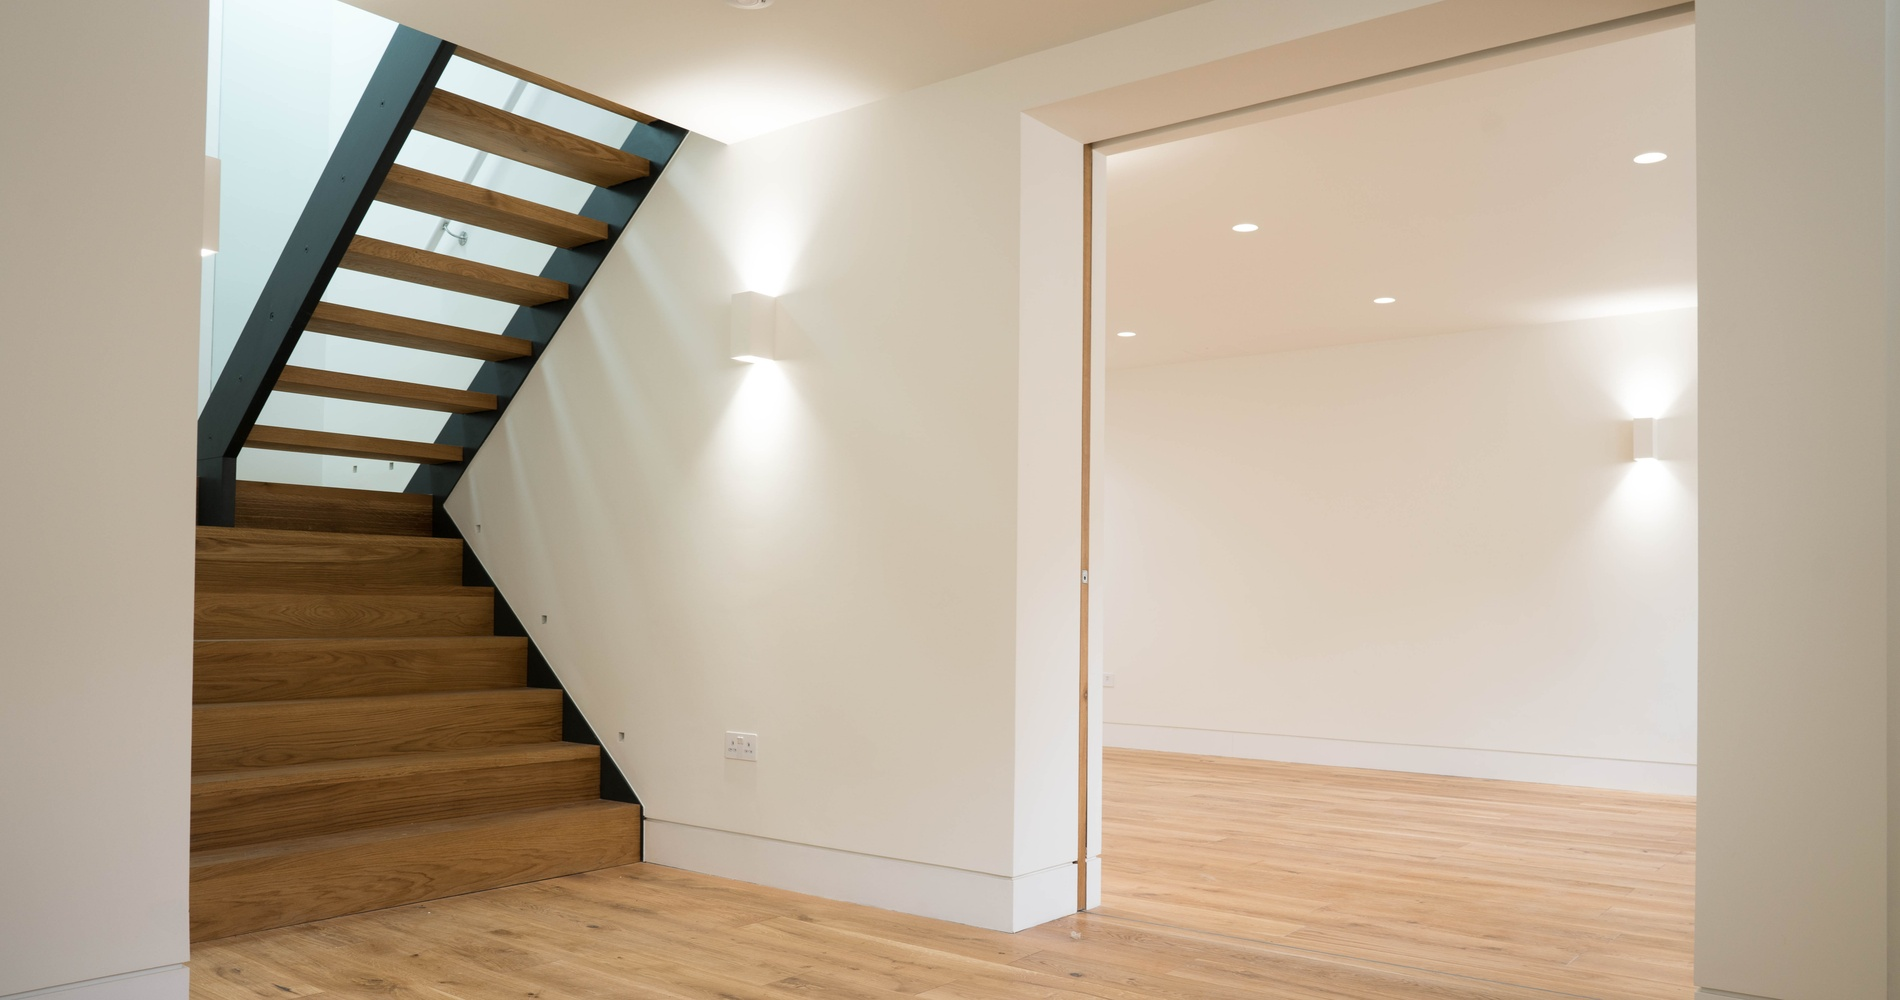 Wooden staircase and sliding internal doors, Marylebone